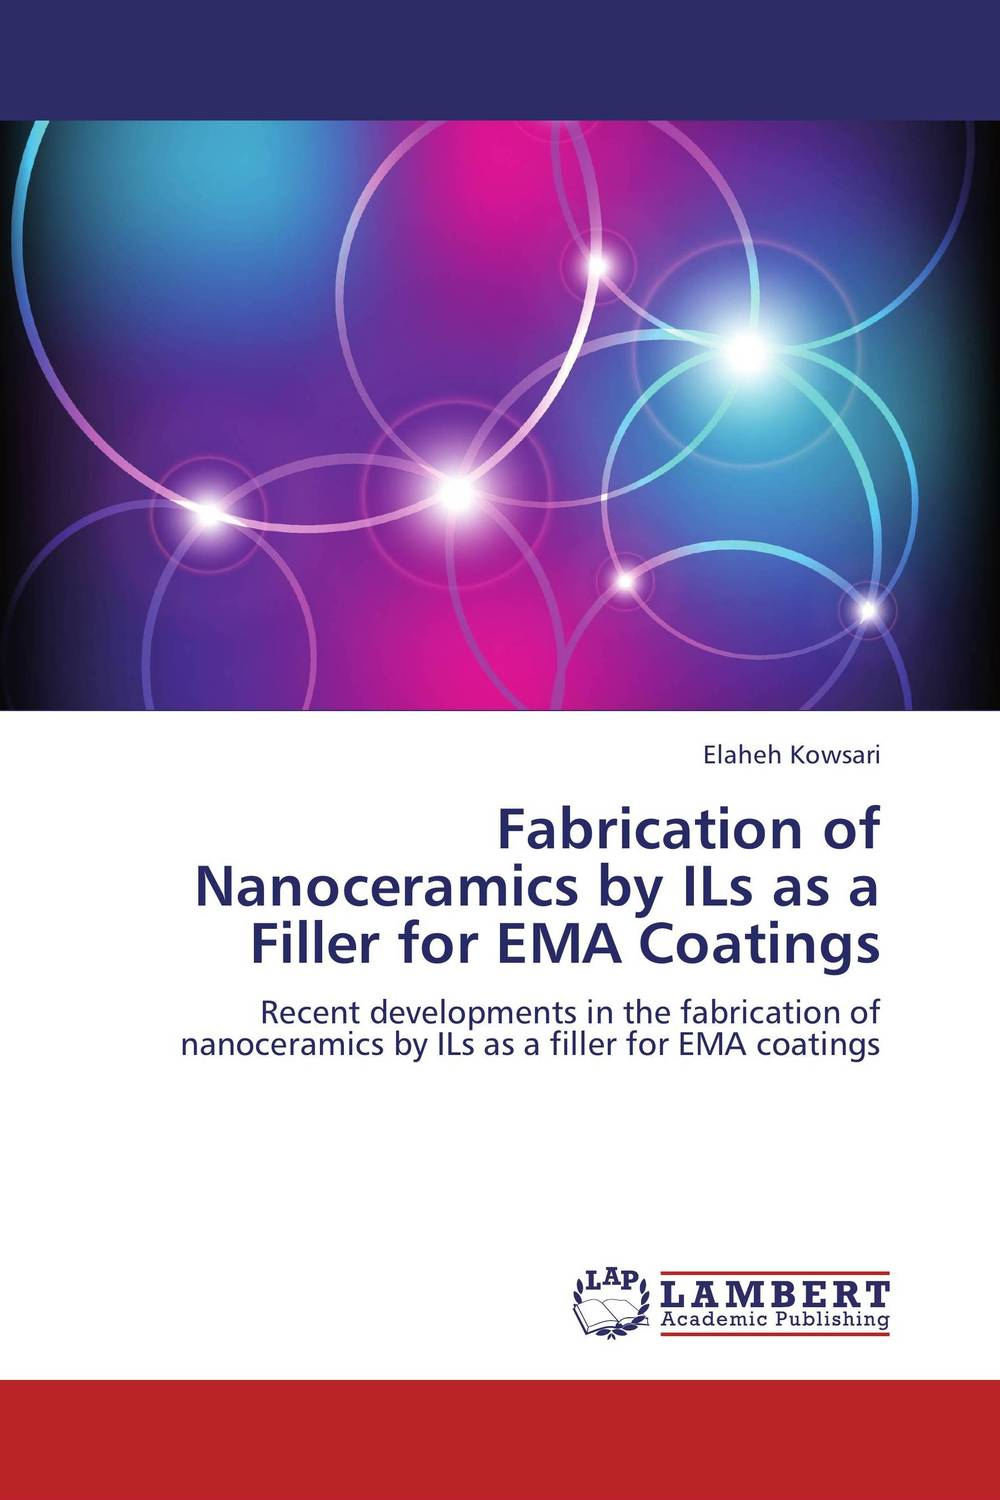 Fabrication of Nanoceramics by ILs as a Filler for EMA Coatings si atrp for attaining tailor made polymer coatings